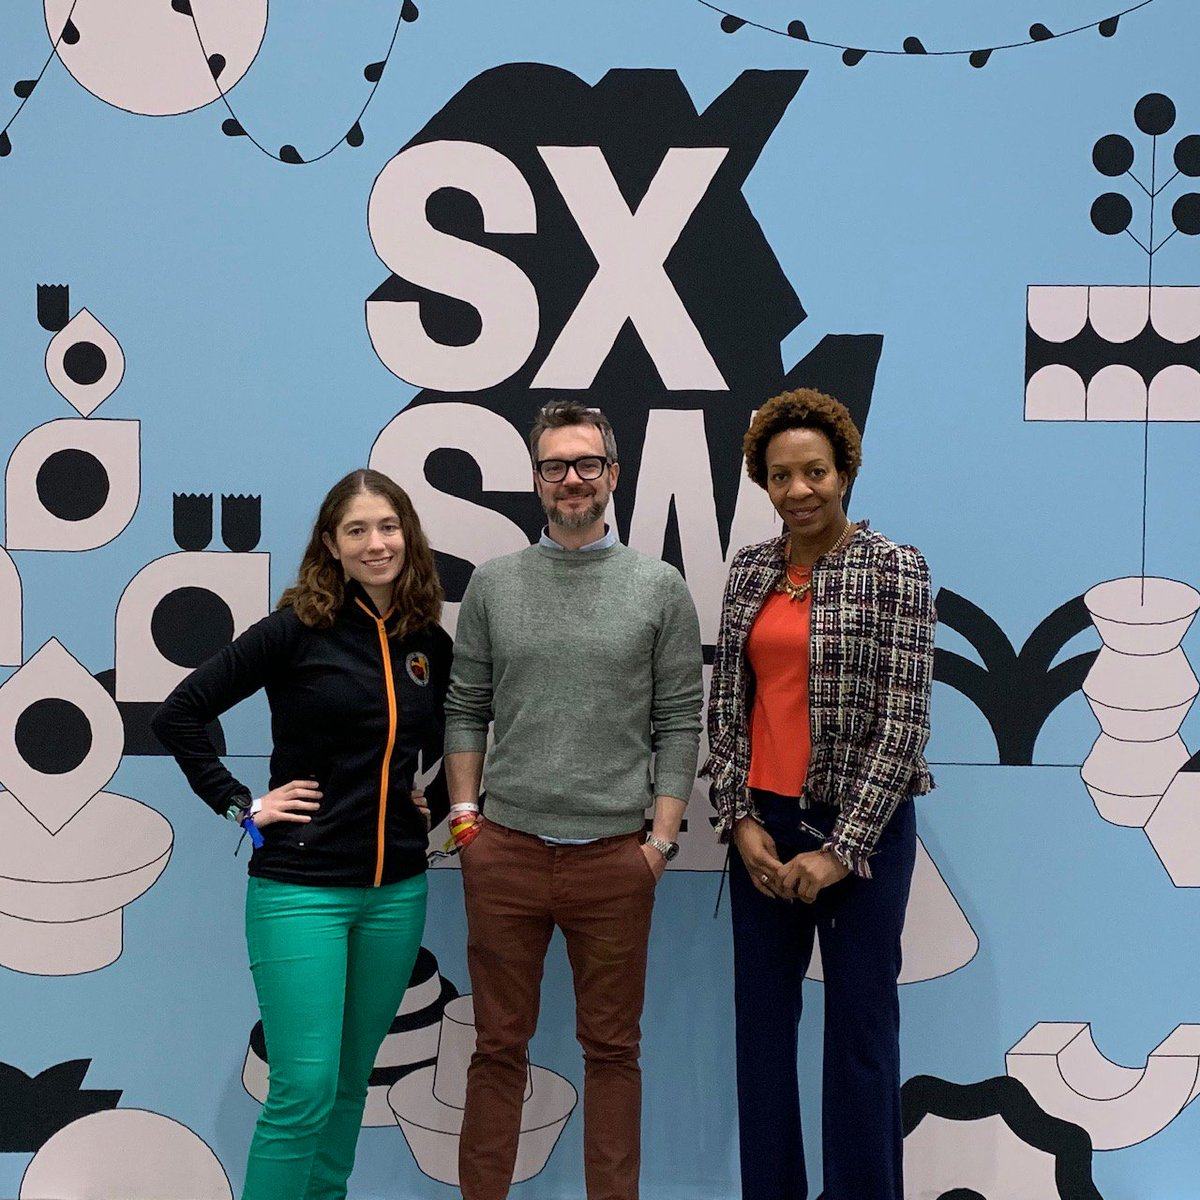 Katie, Michael, and Rita are ready to tell their story on how to Seek the Truth, and Speak the Truth. #SXSW2019 https://schedule.sxsw.com/2019/events/PP87888 …